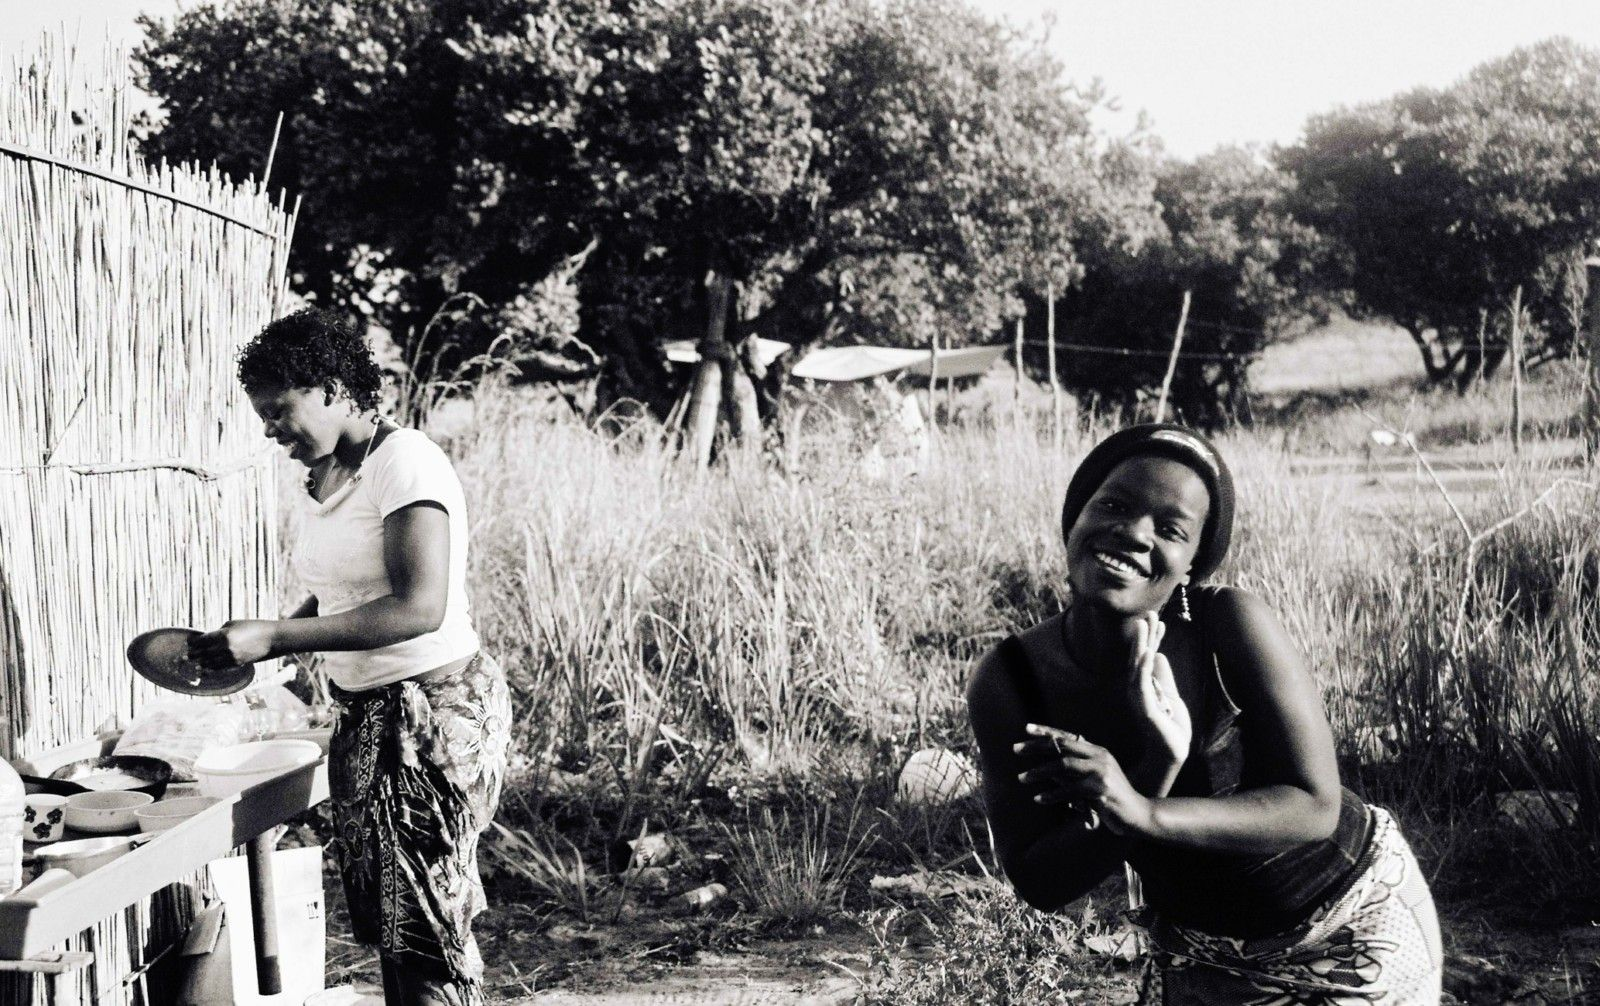 The #friendly people of #Mozambique